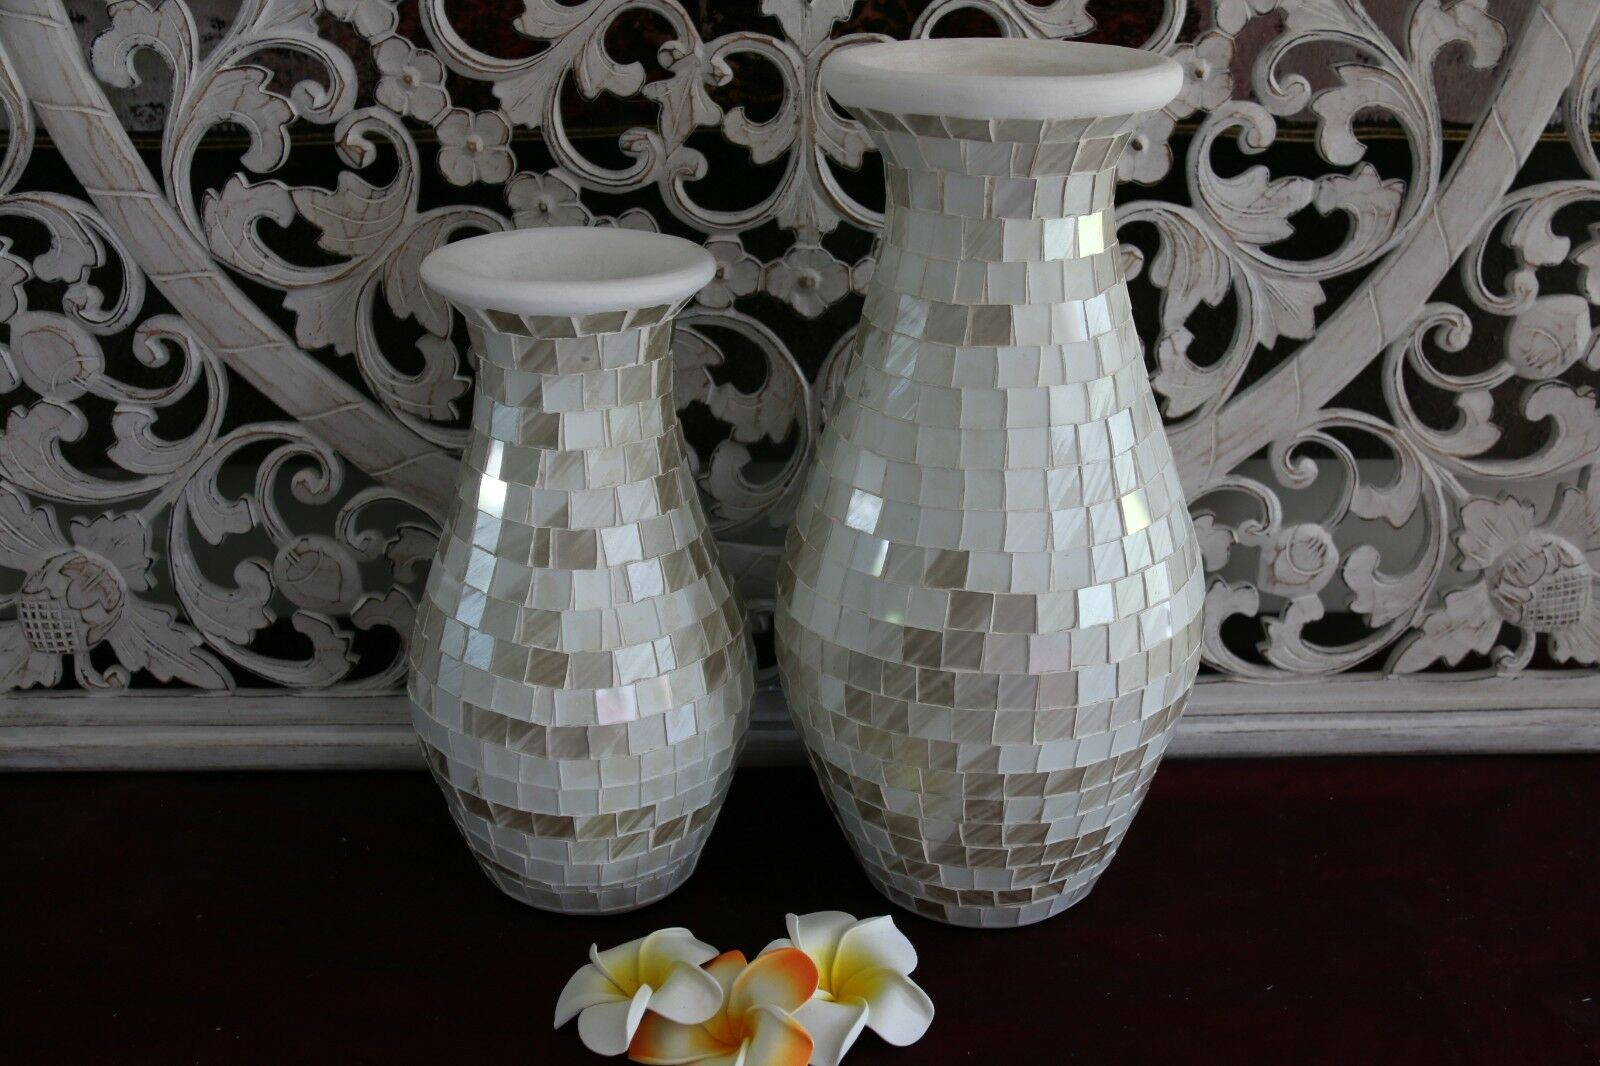 NEW Balinese Mosaic Decorative Vase - 2 Sizes!!  Bali Mosaic Vase White Pearl